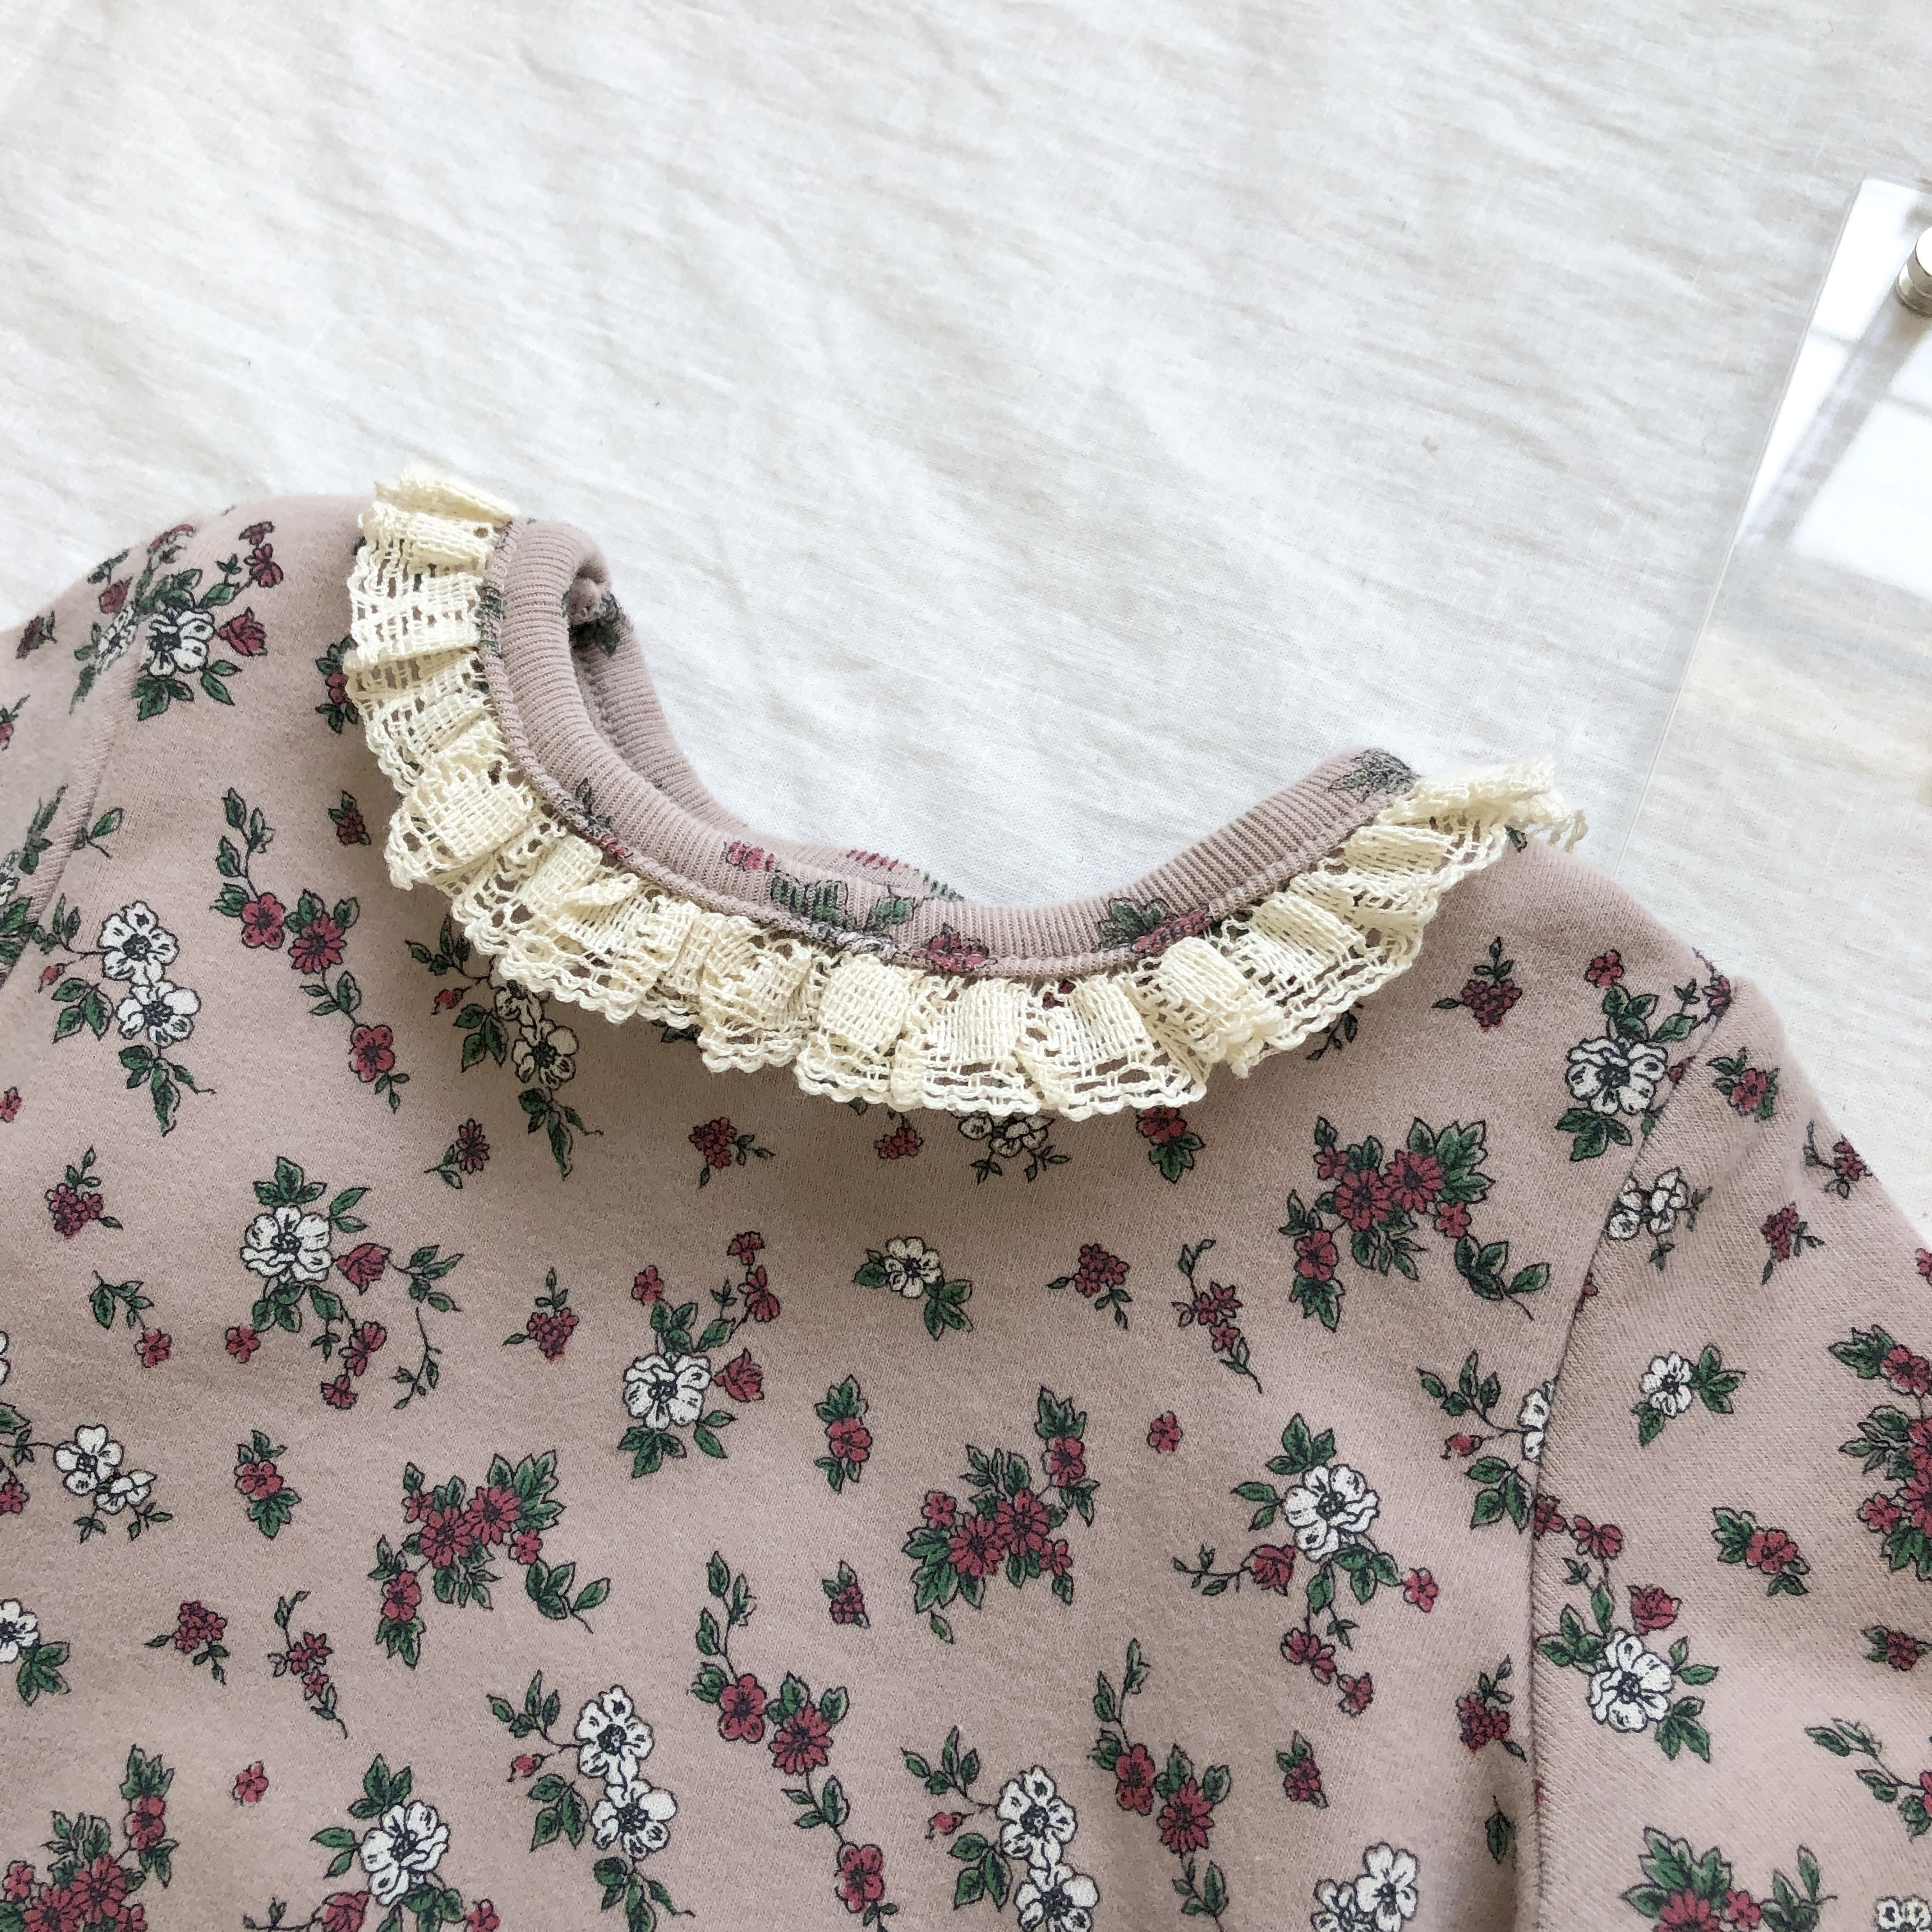 《 102 》floral×lace ロンパース